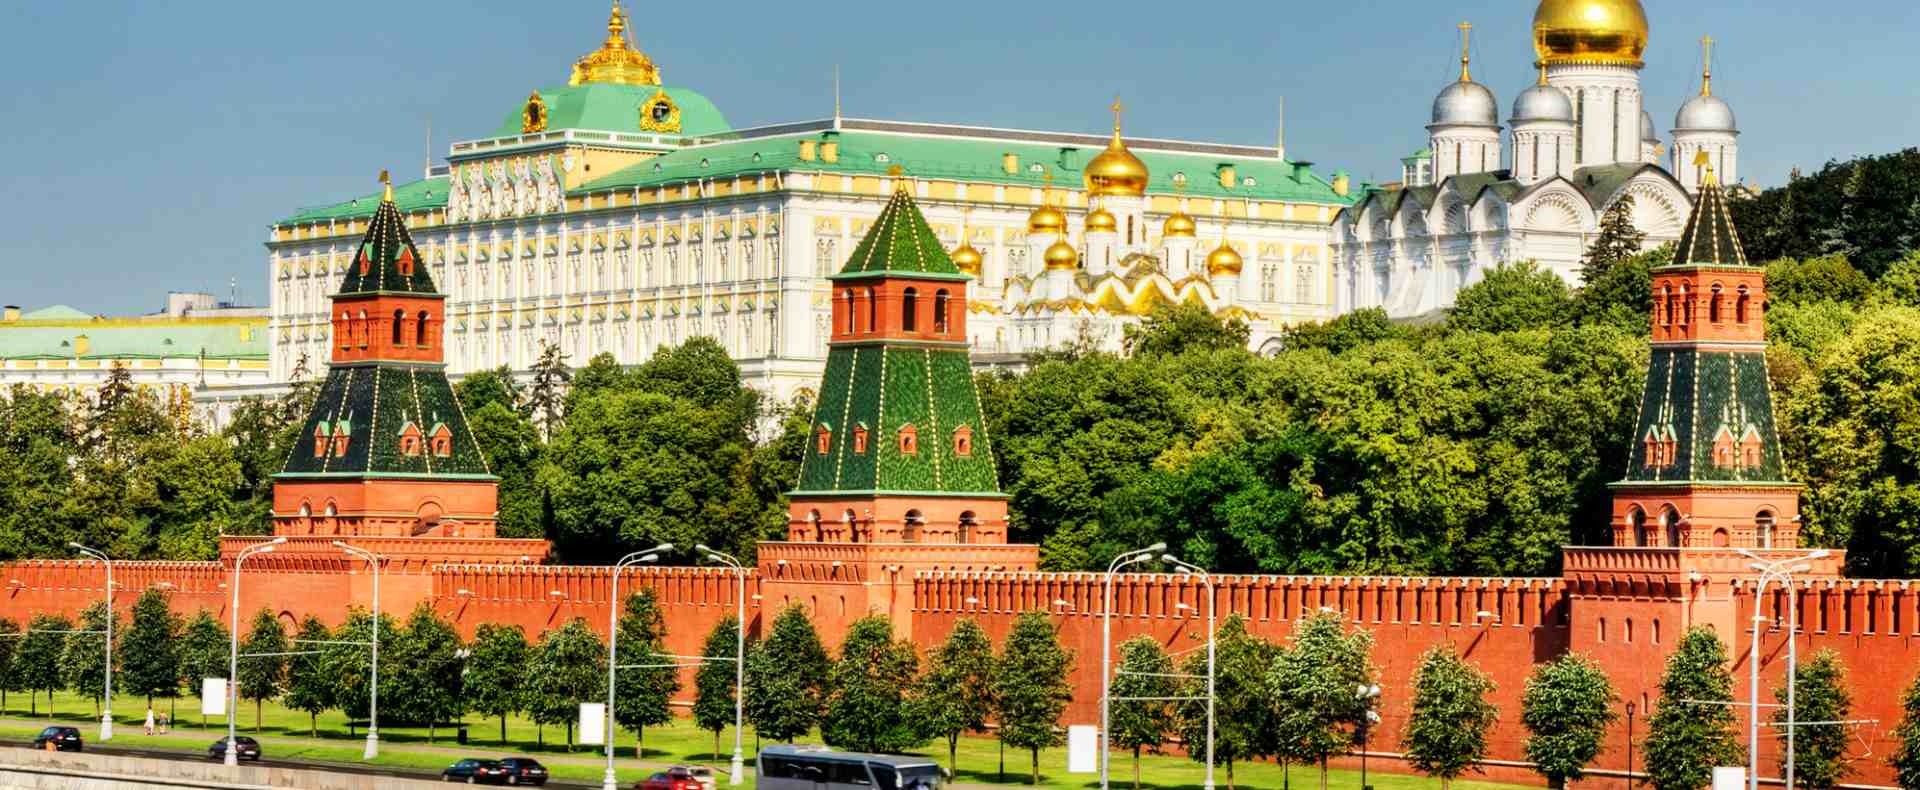 The Hermitage Museum, St  Petersburg, Russia - Russia Travel Guide